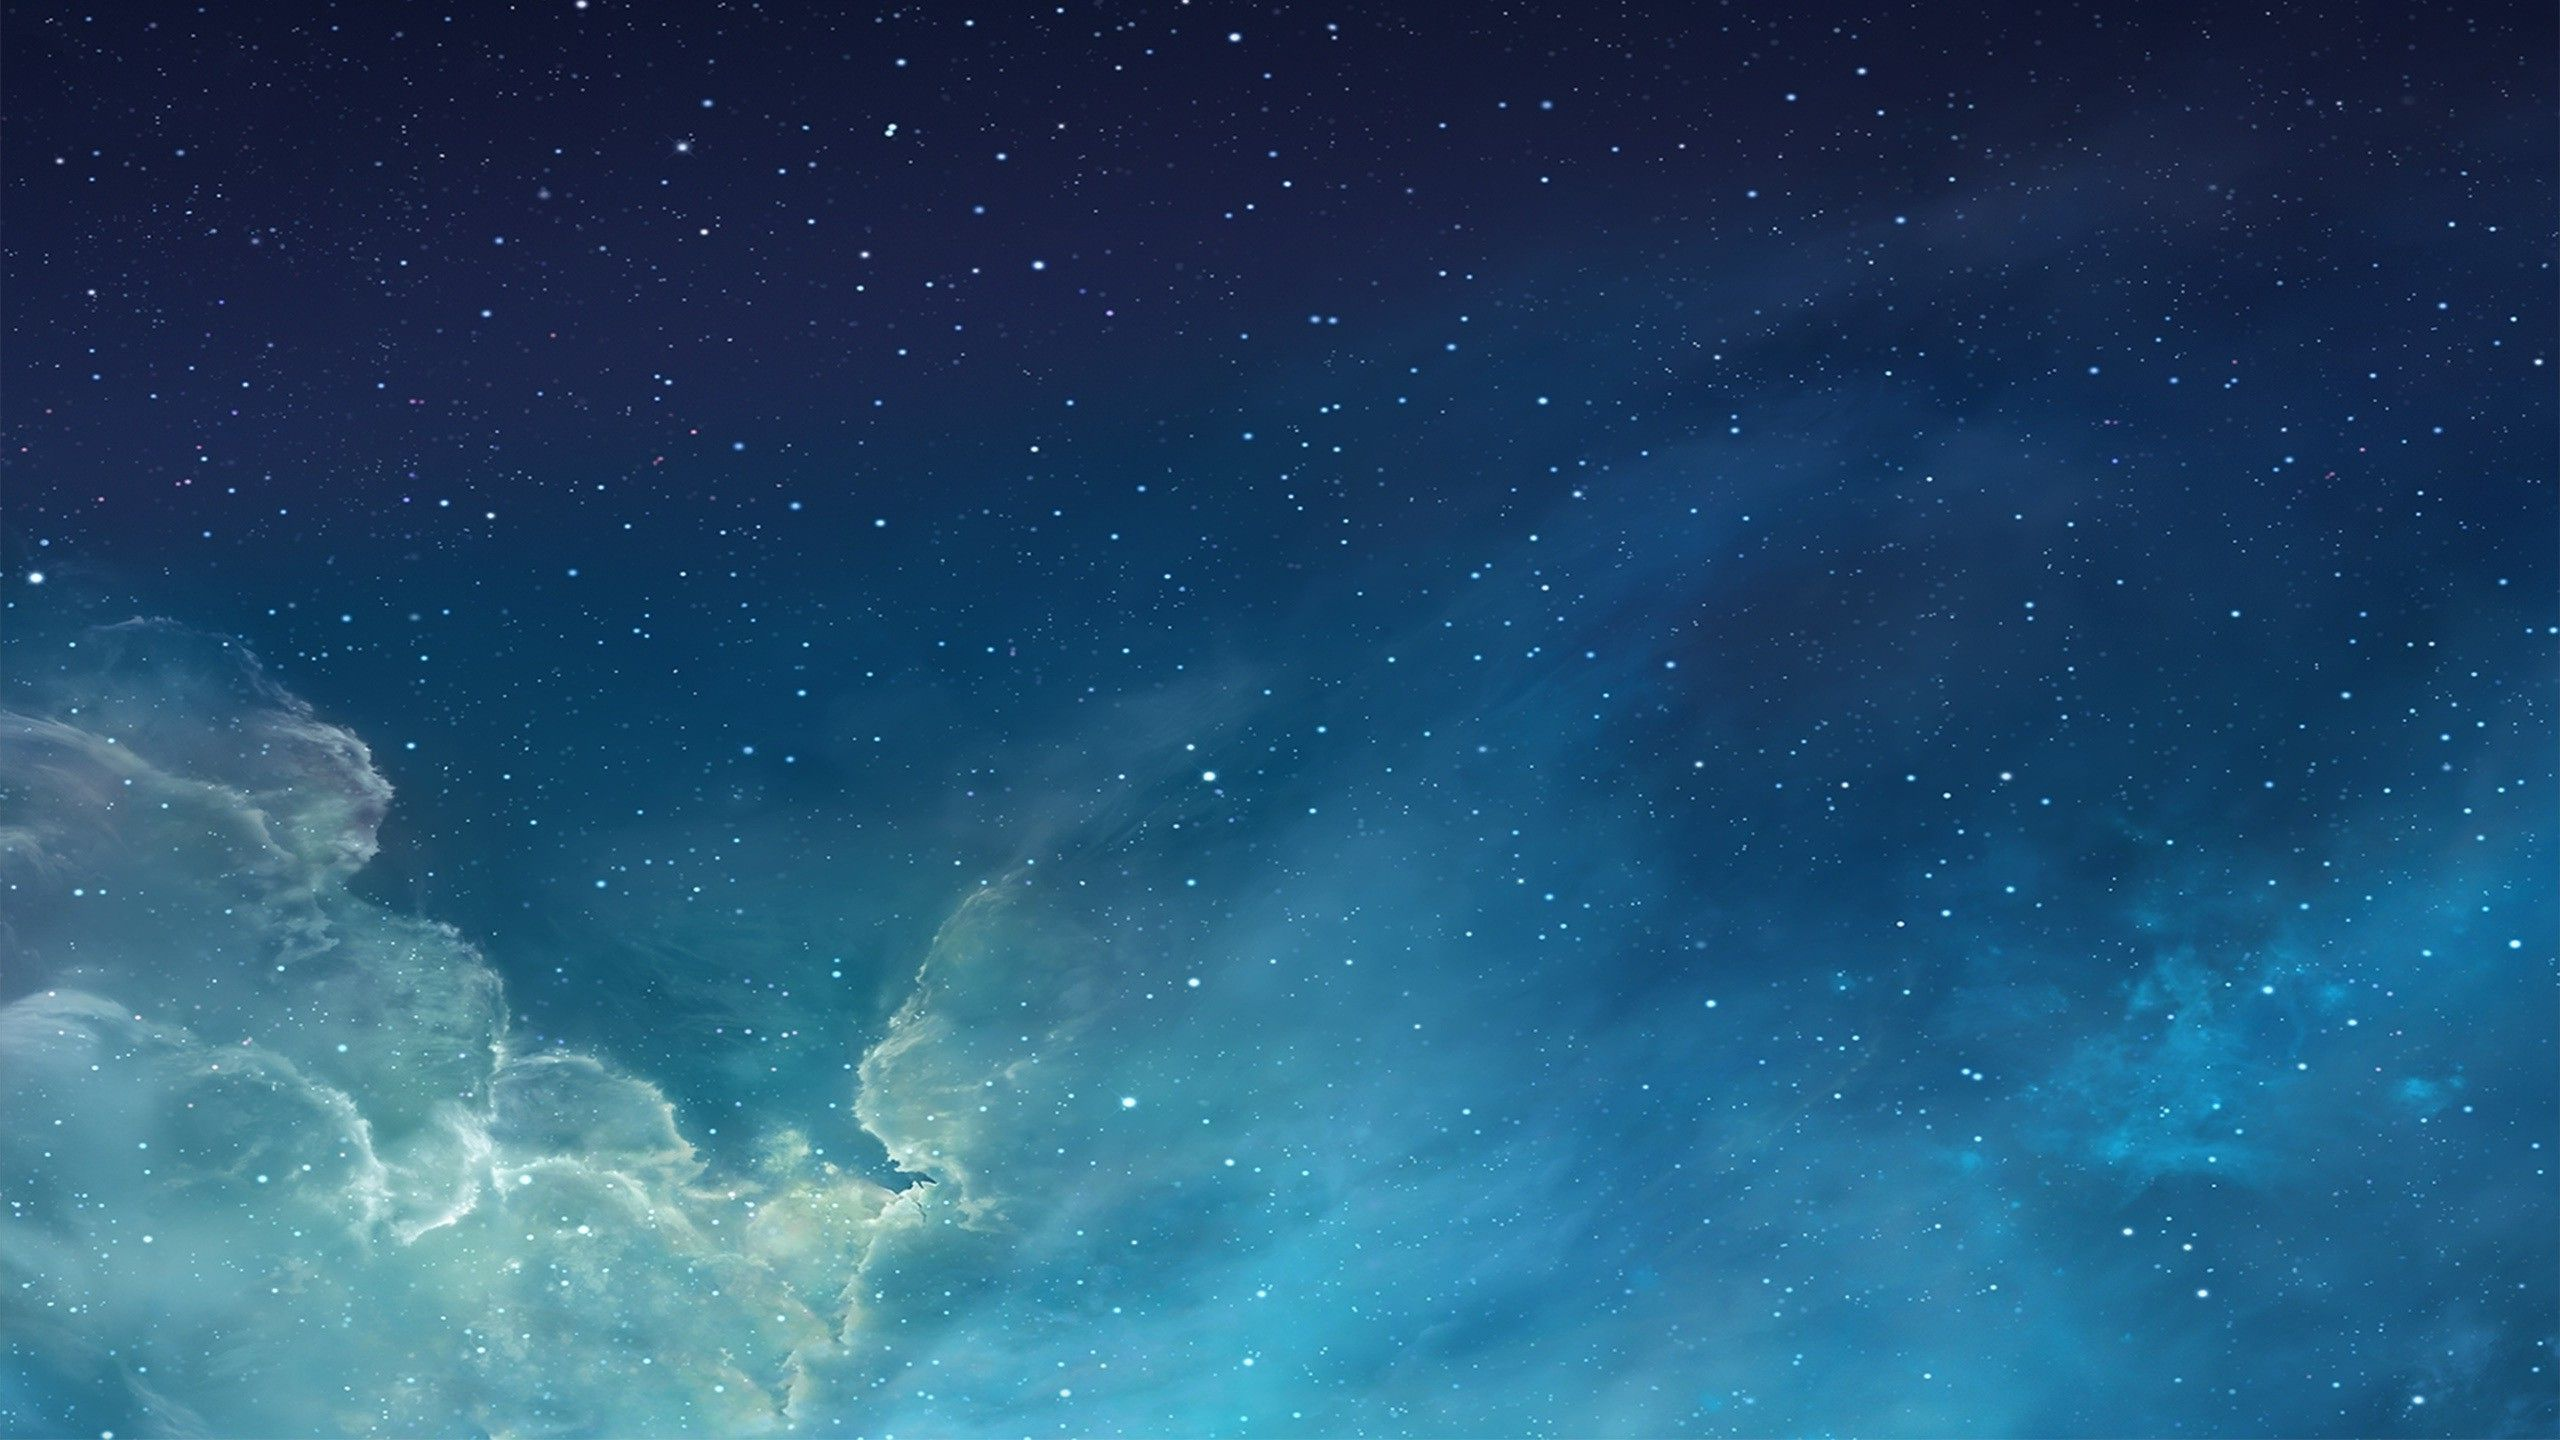 Stars In The Sky Wallpaper Bright Blue Day Pinterest Sky Hd